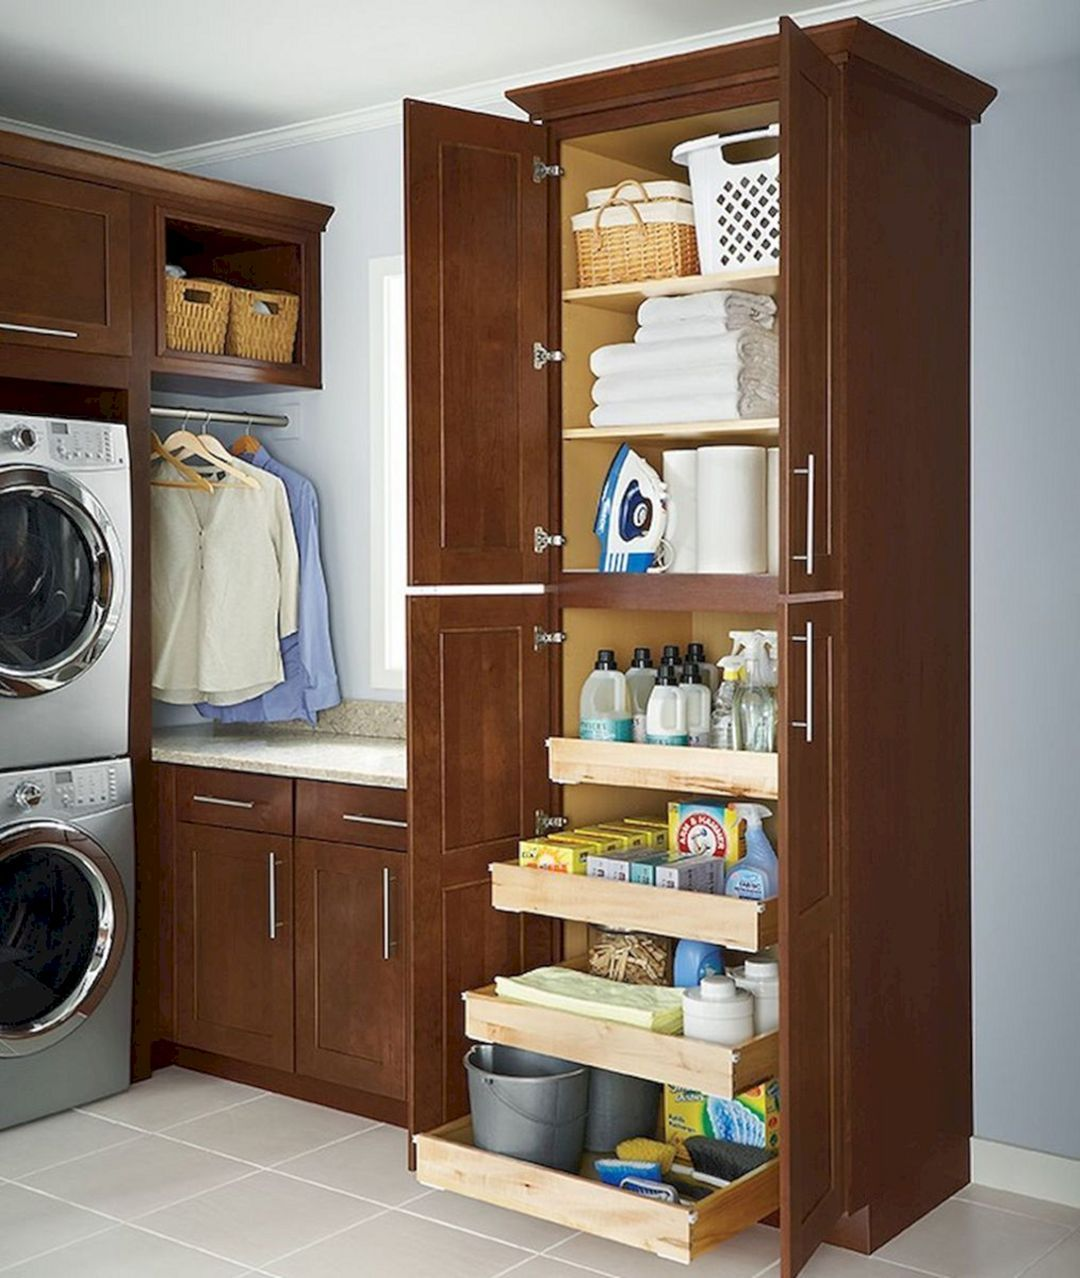 25 Creative Laundry Room Storage Design To Inspire You With Images Diy Laundry Room Storage Laundry Room Diy Laundry Room Layouts